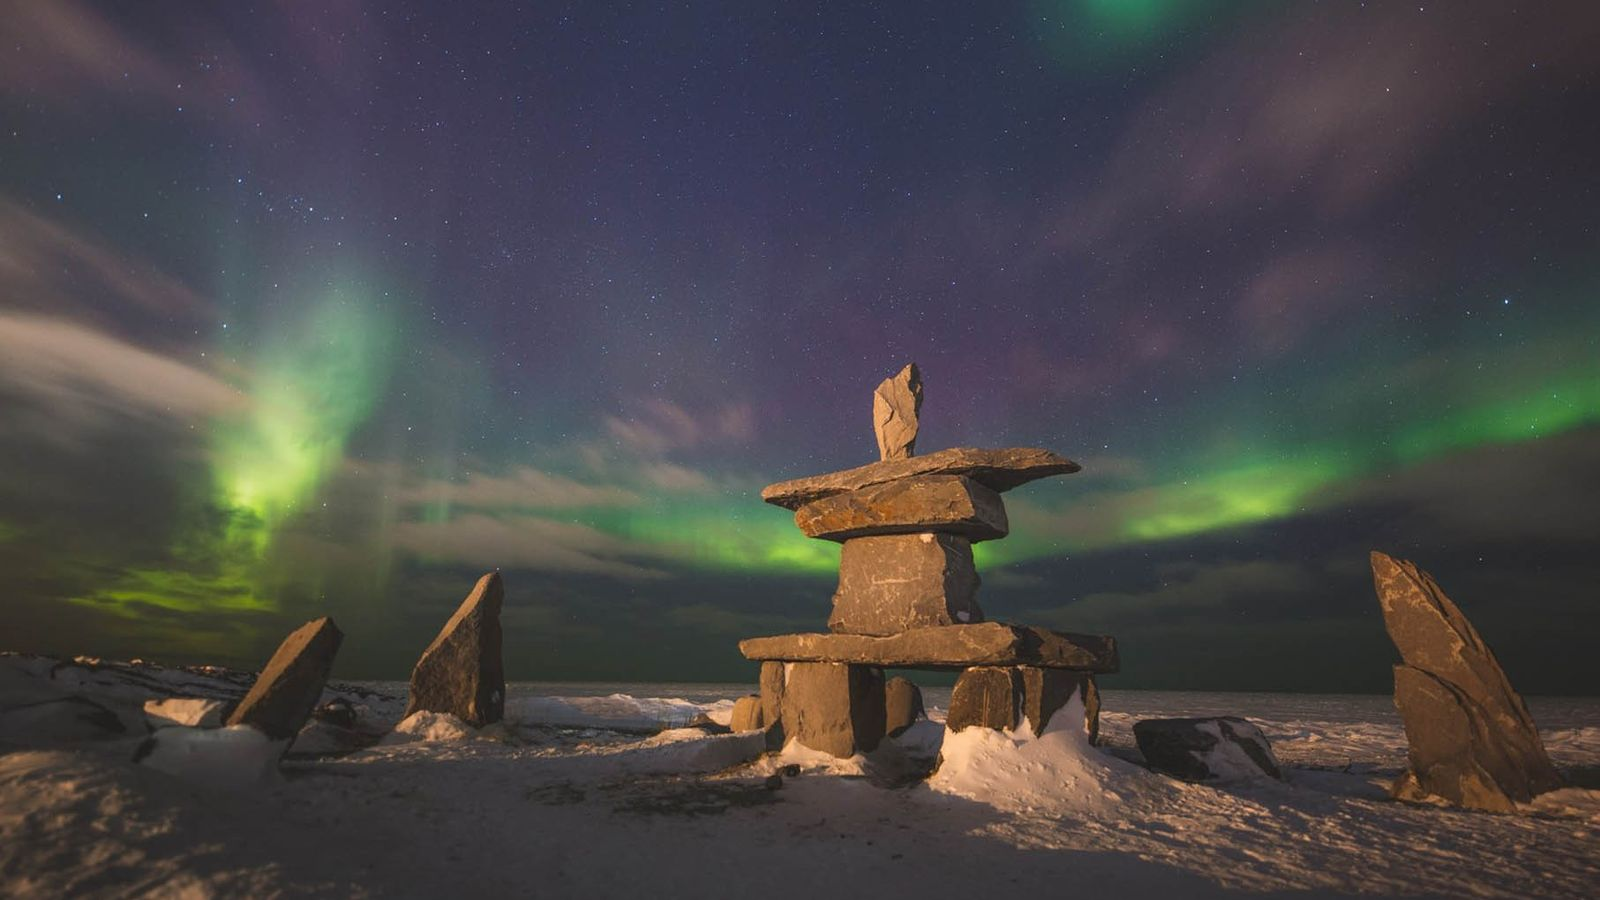 Northern Lights over Inukshuk, a structure of rough stones traditionally used by Inuit people as a ...